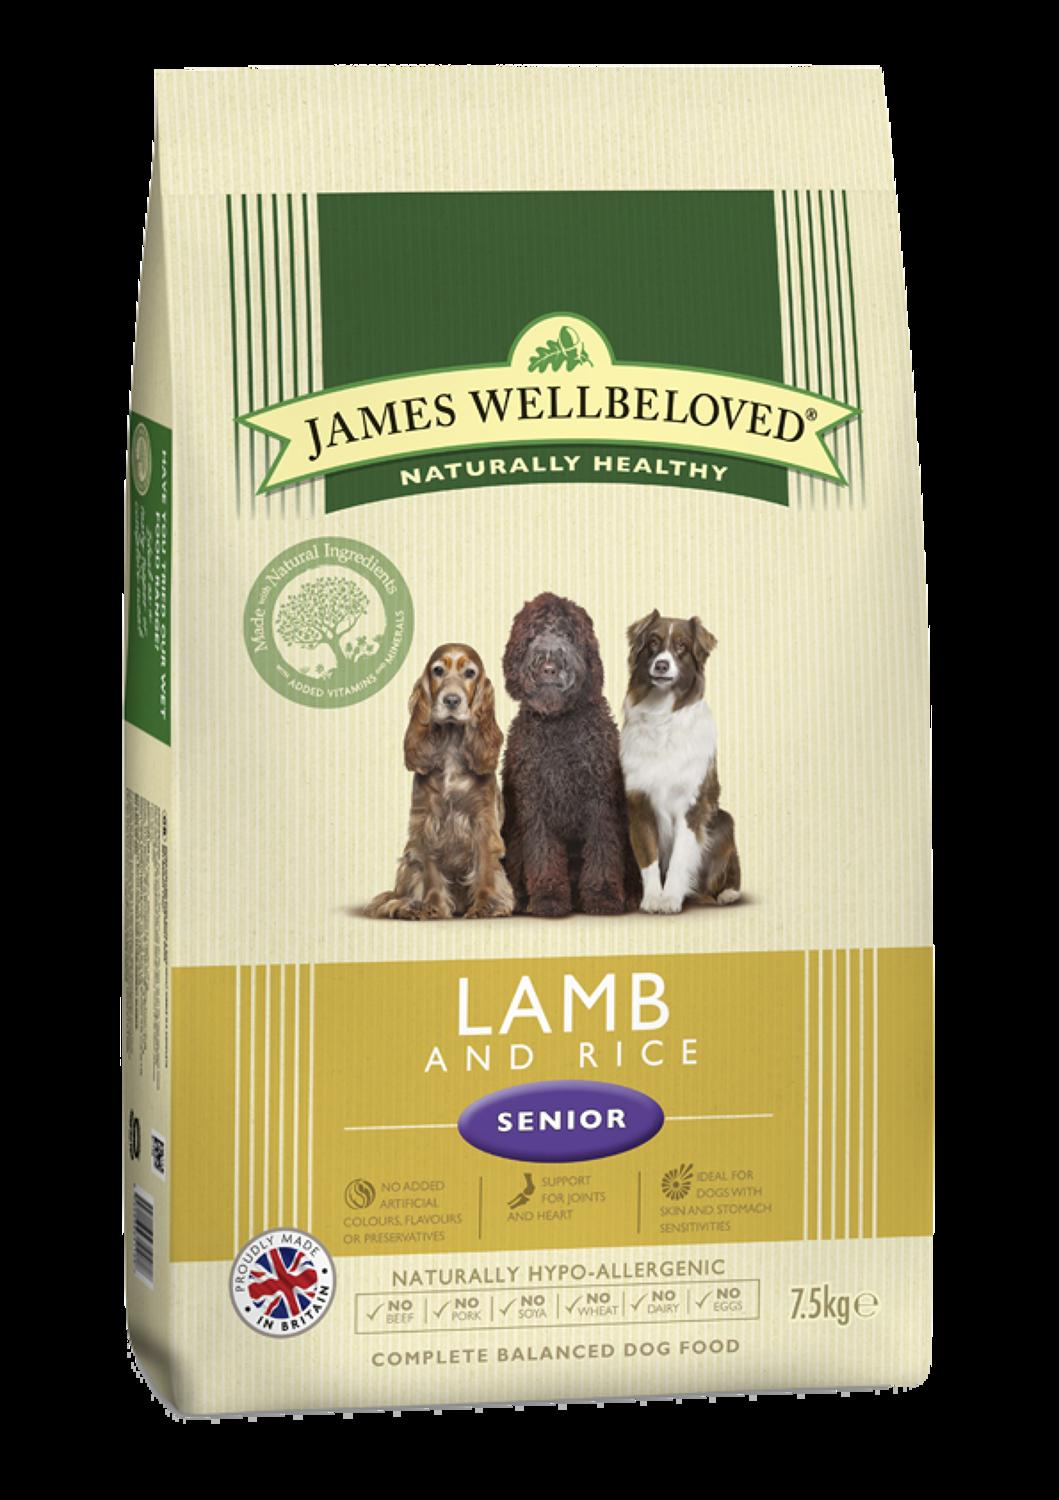 James Wellbeloved Senior Lamb & Rice 15kg